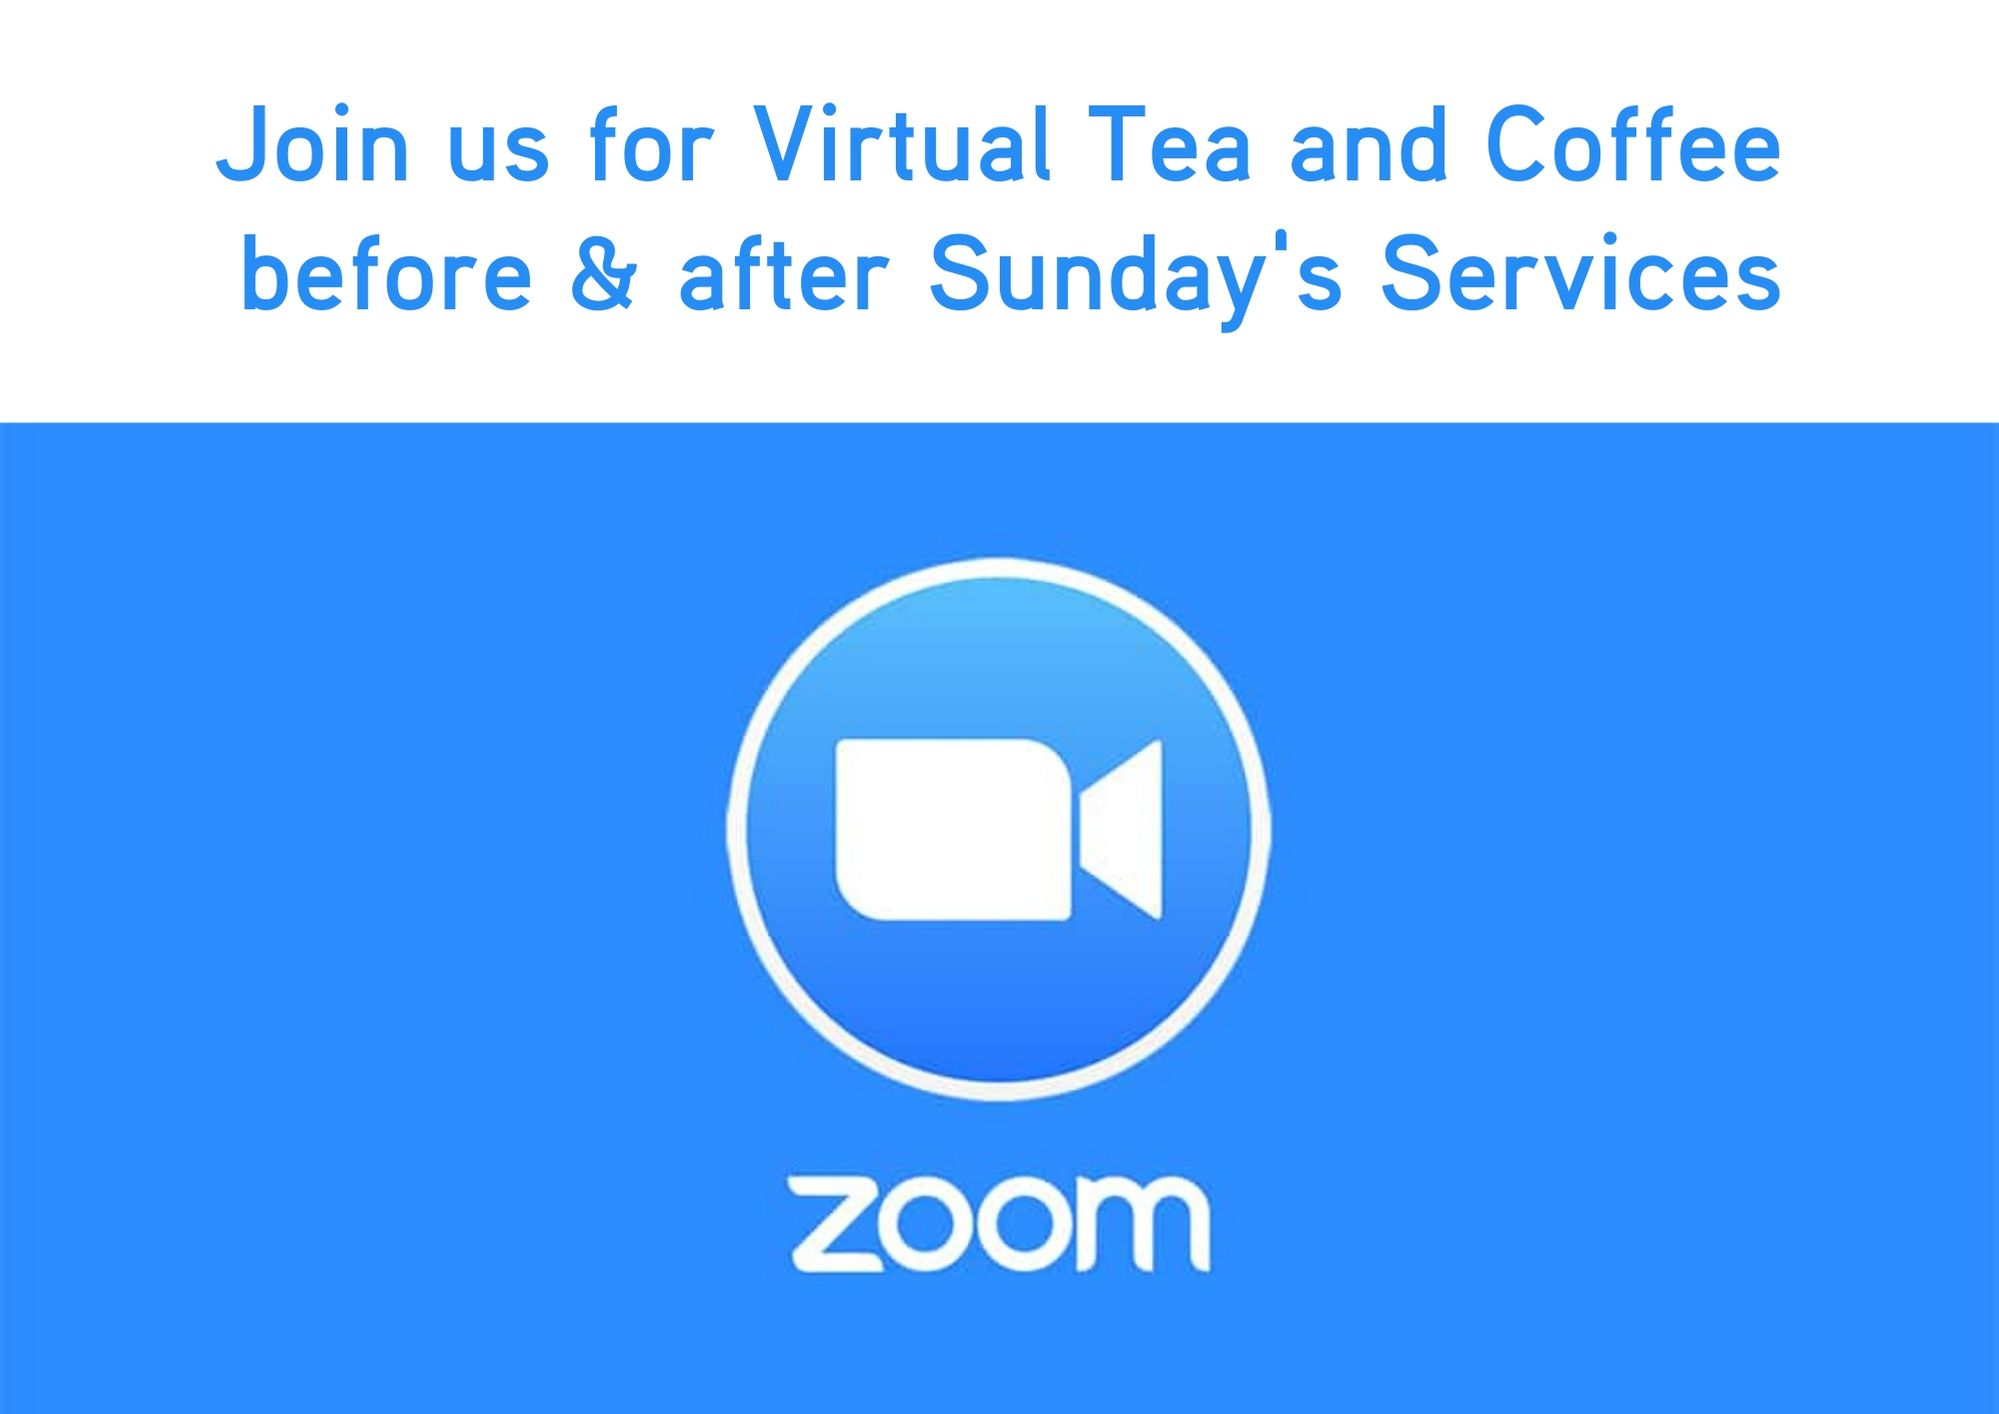 Virtual tea and coffee Zoom